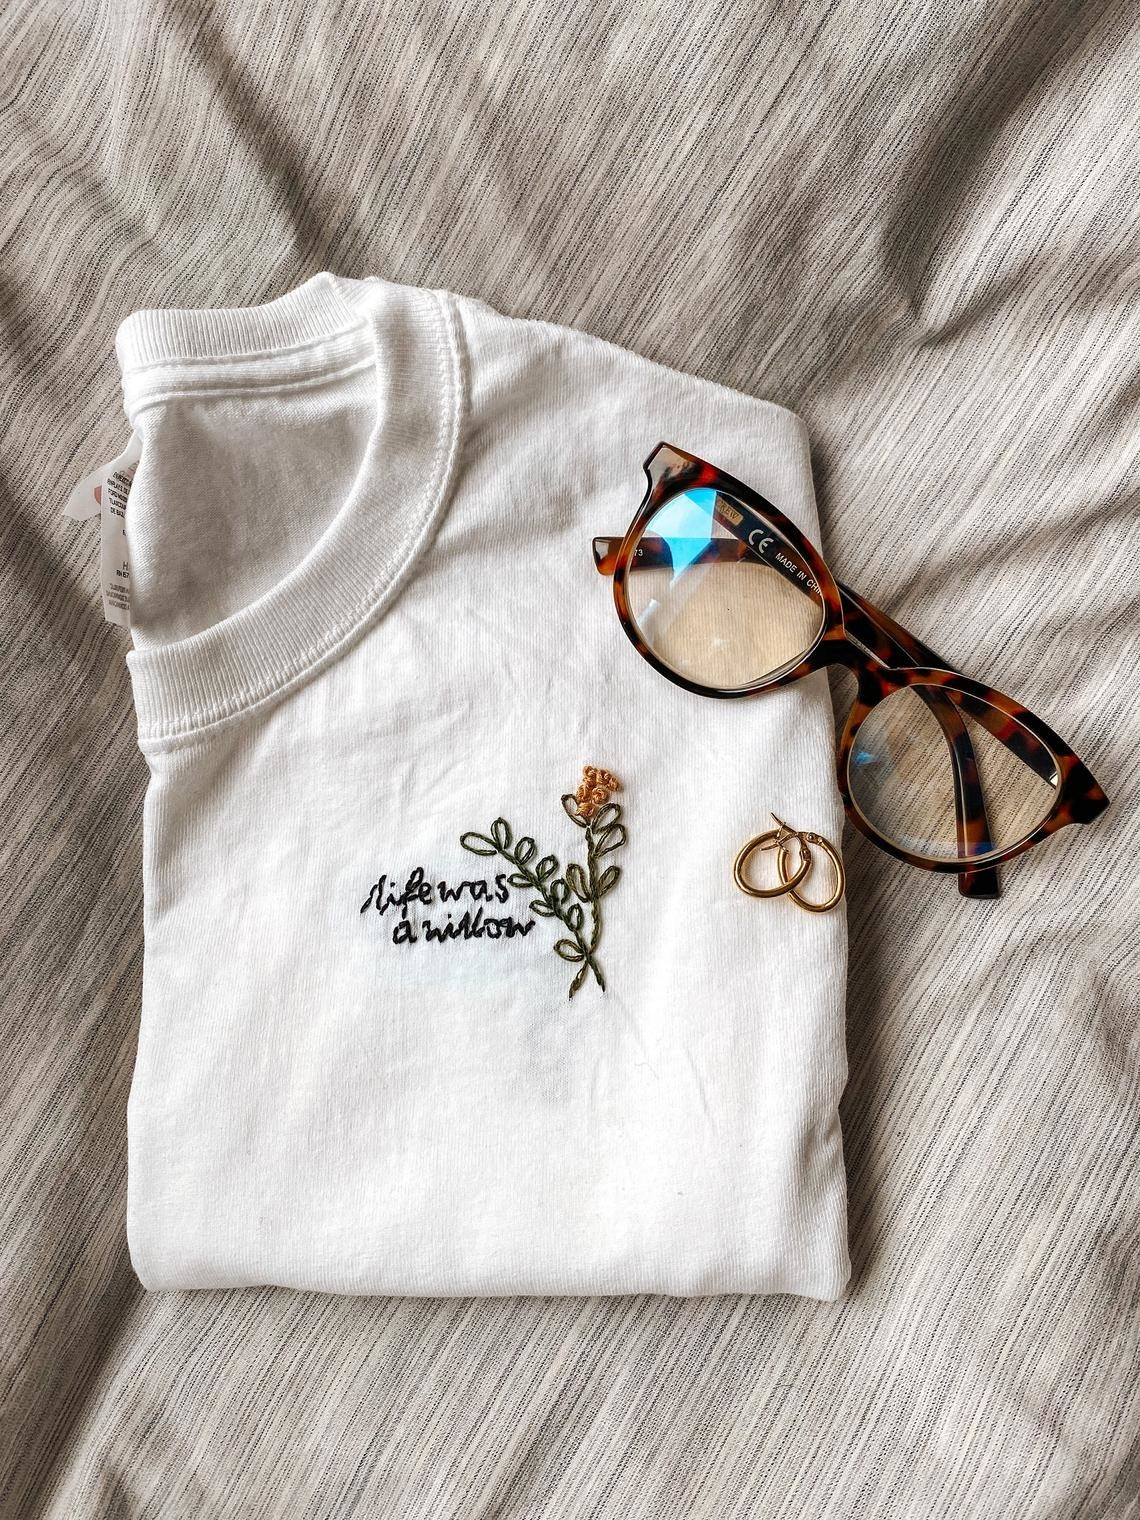 white crewneck that says life was a willow